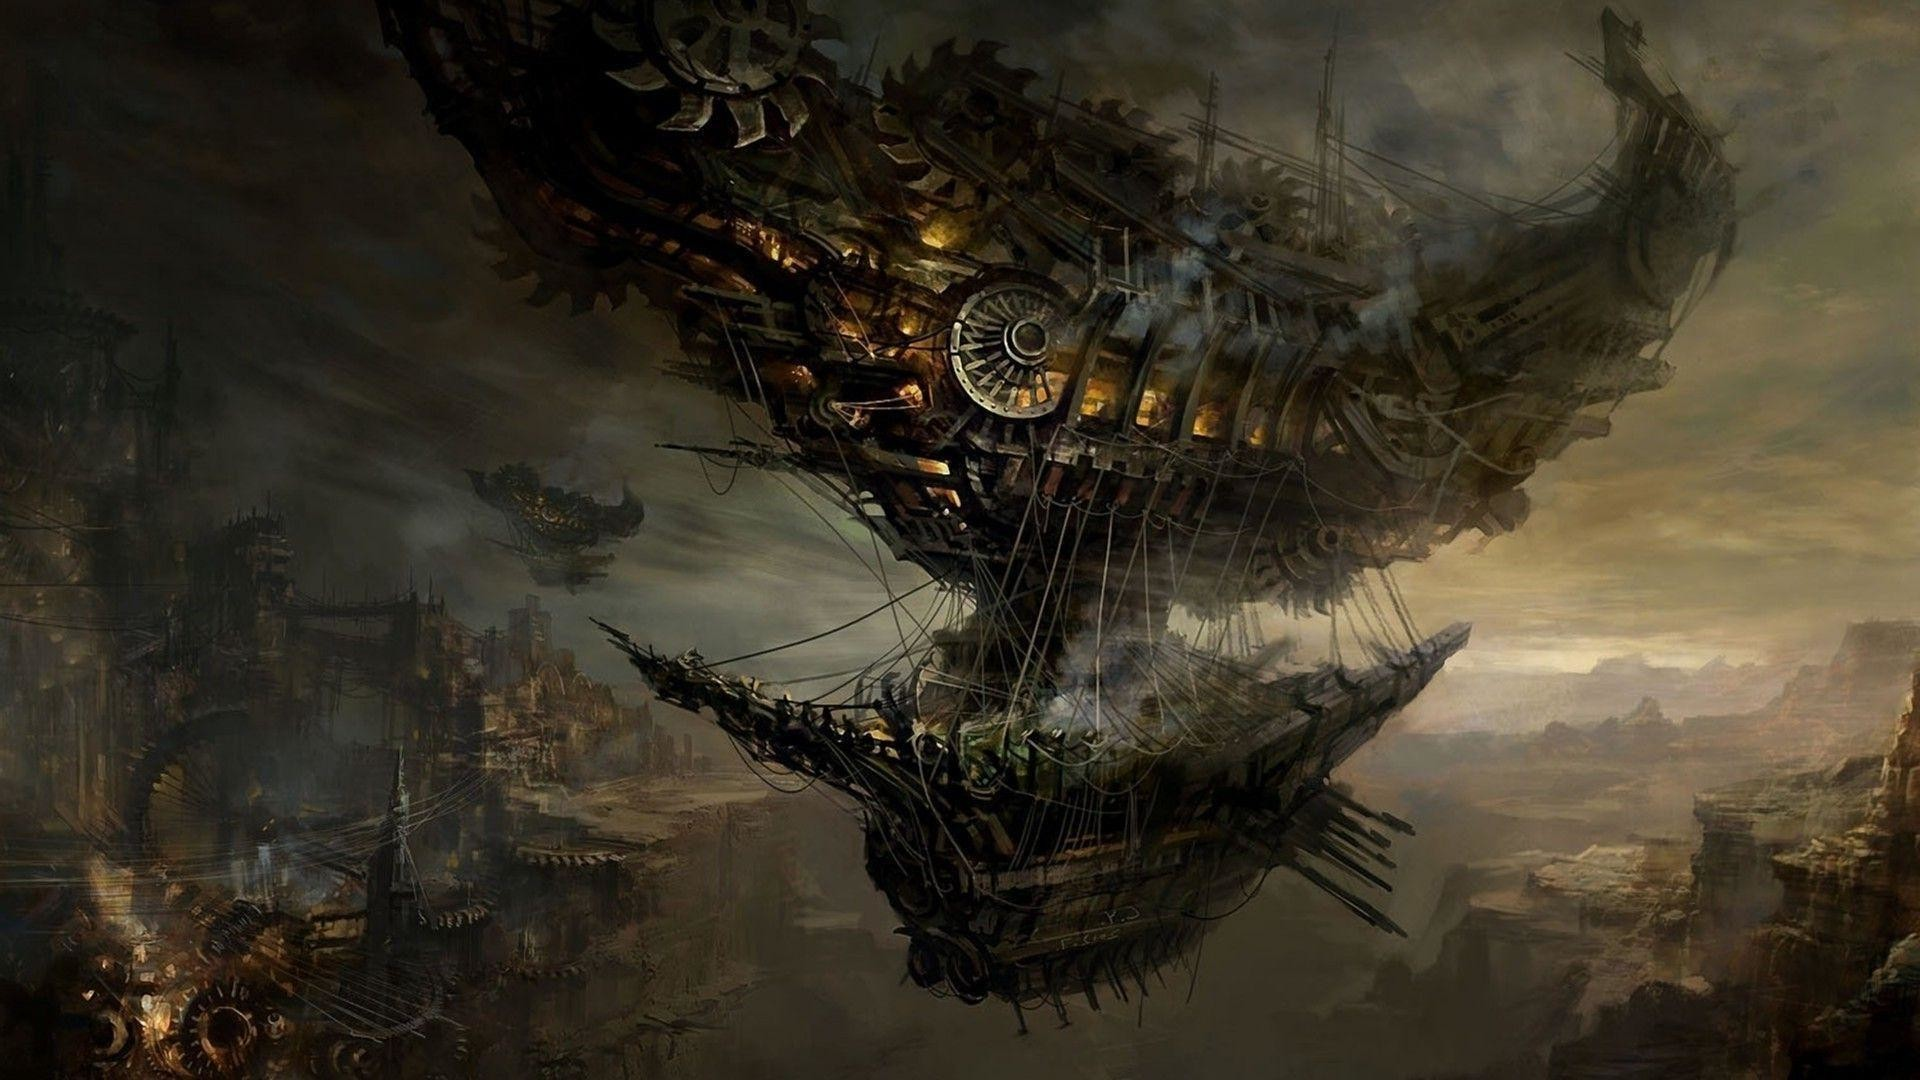 Res: 1920x1080, Download Steampunk Blimp Wallpaper  | Full HD Wallpapers